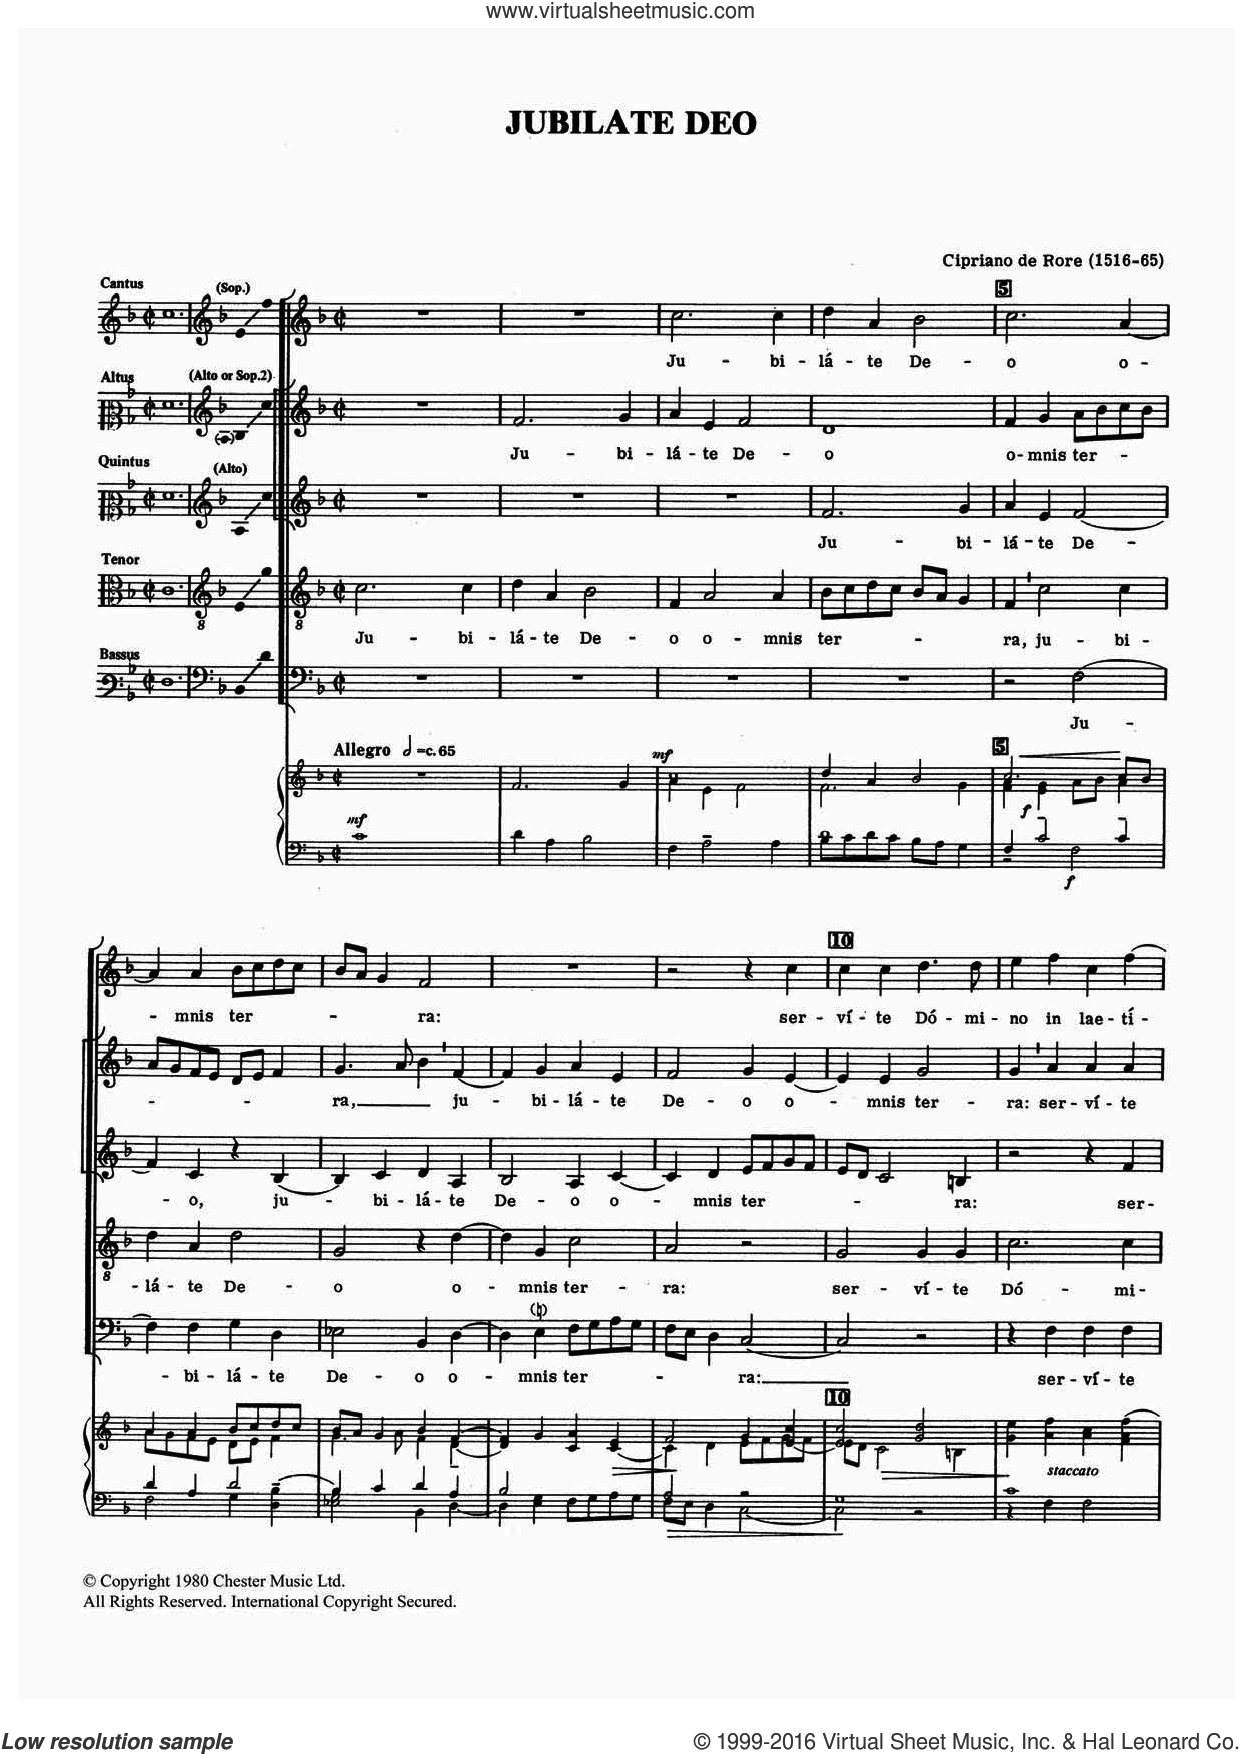 Jubilate Deo sheet music for voice, piano or guitar by Cipriano de Rore. Score Image Preview.